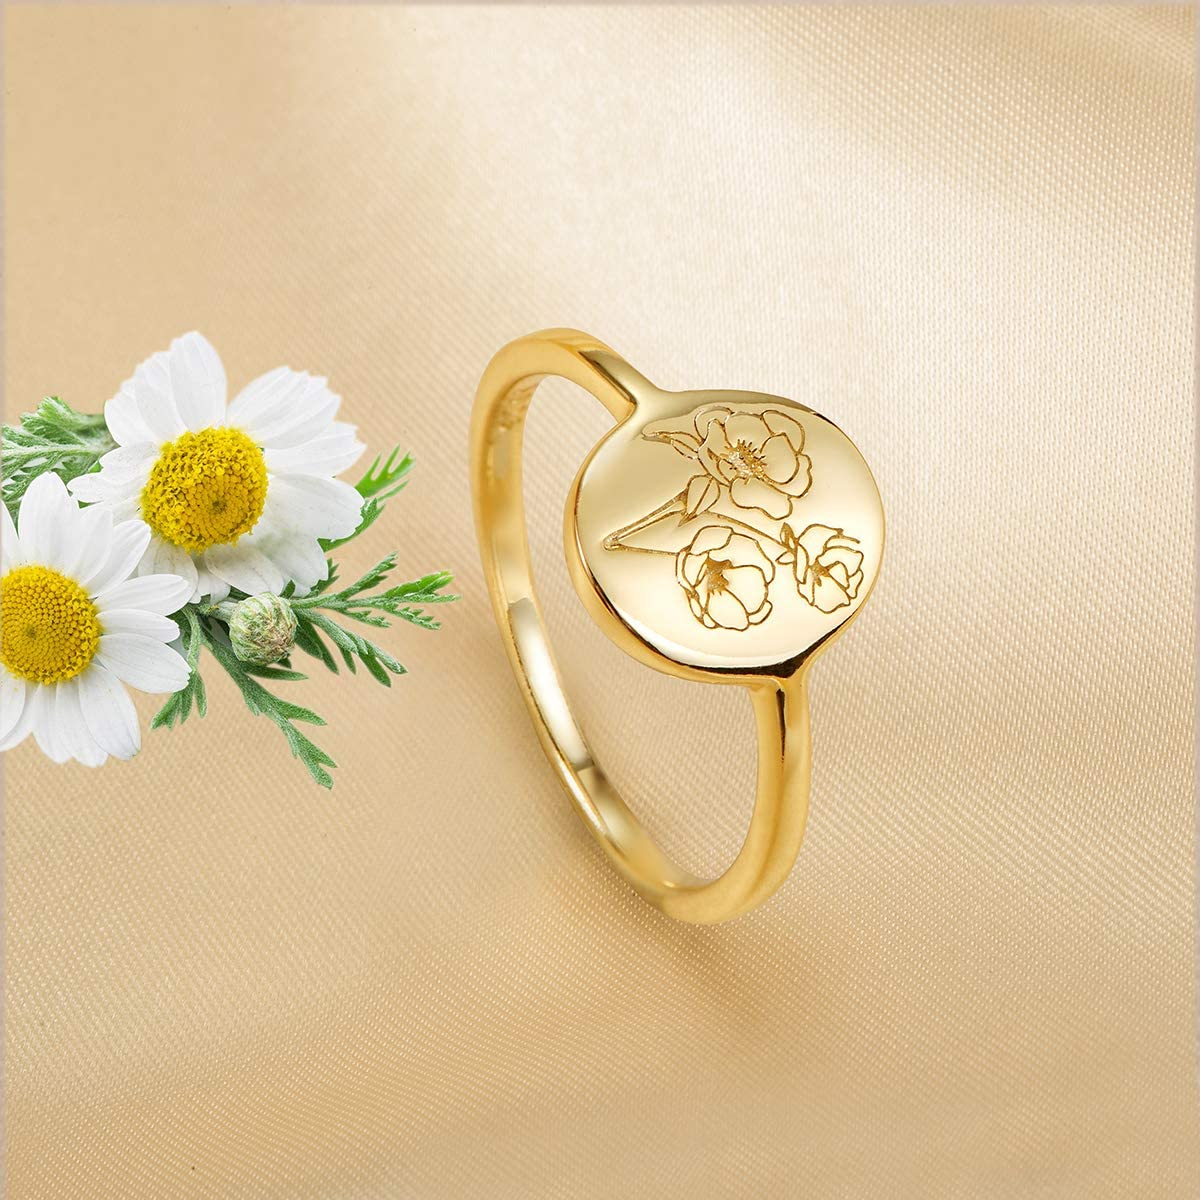 Delicate Personalized Jewelry Gift for Women//Girls 18K Gold Over 925 Sterling Silver Ring-Minimalistic Statement Ring with Botanical Engraved Yuemizi Handmade Flower Signet Ring